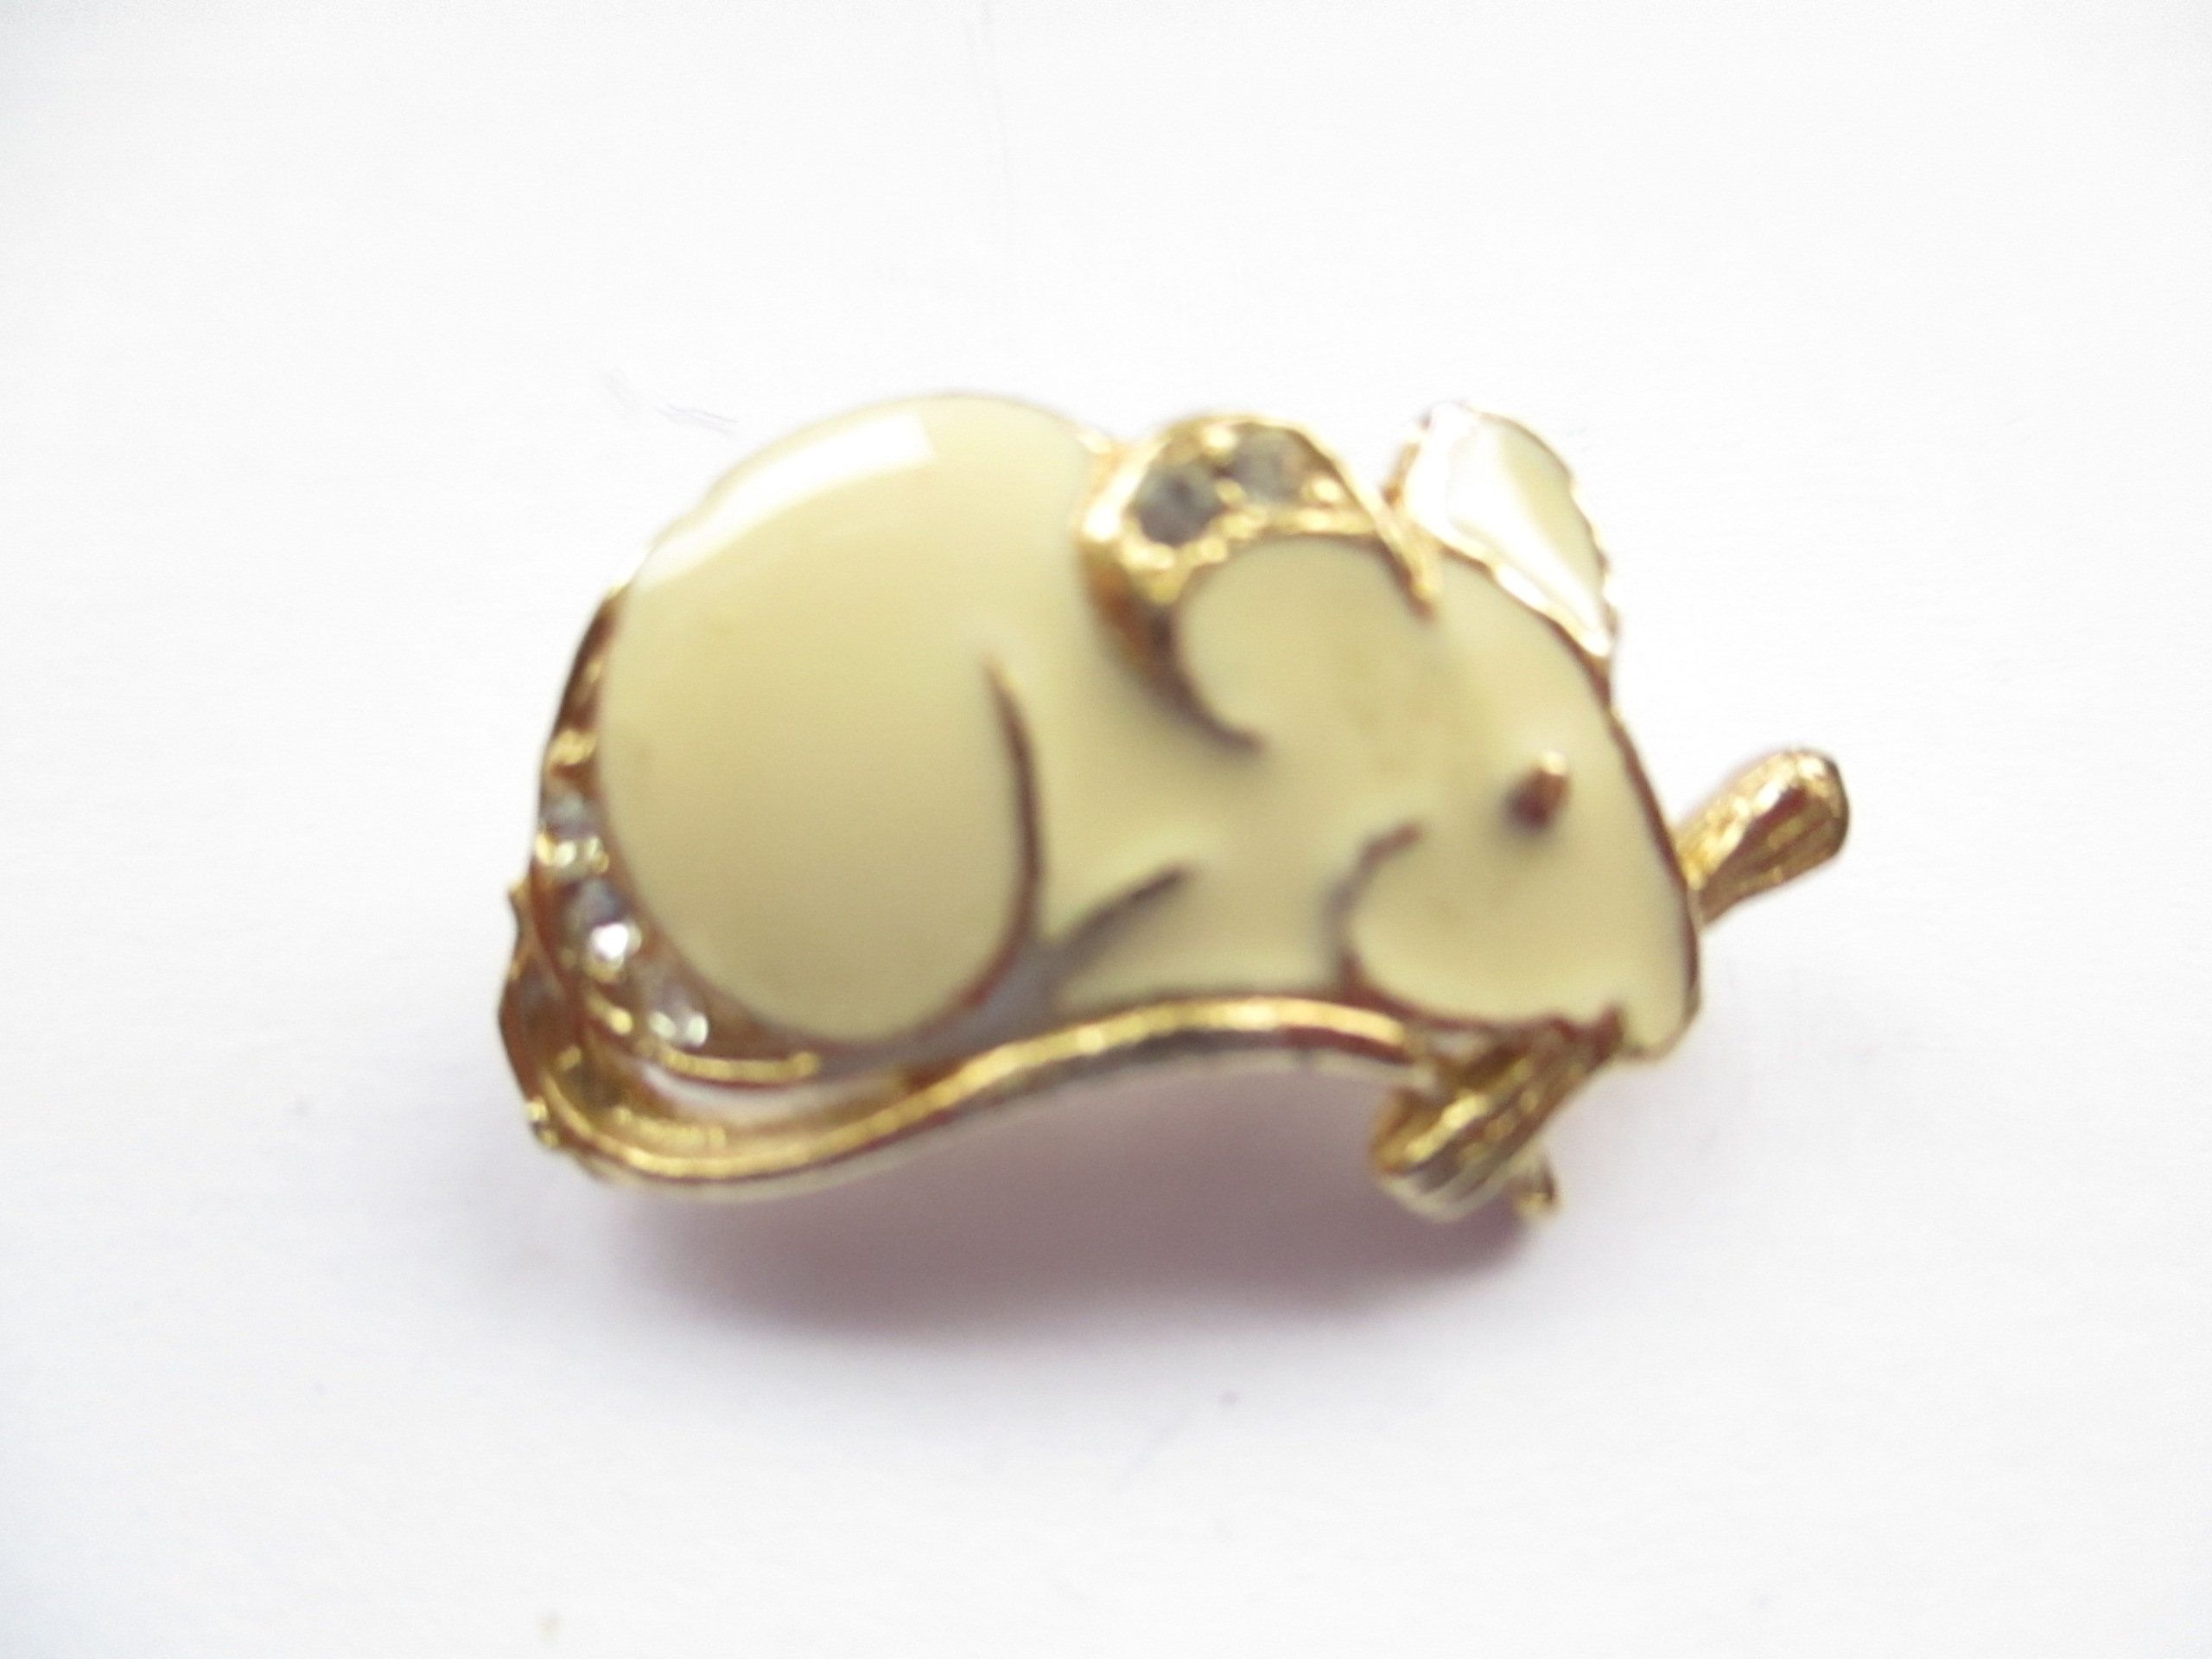 Vintage Gold Tone Mouse Pin or Brooch